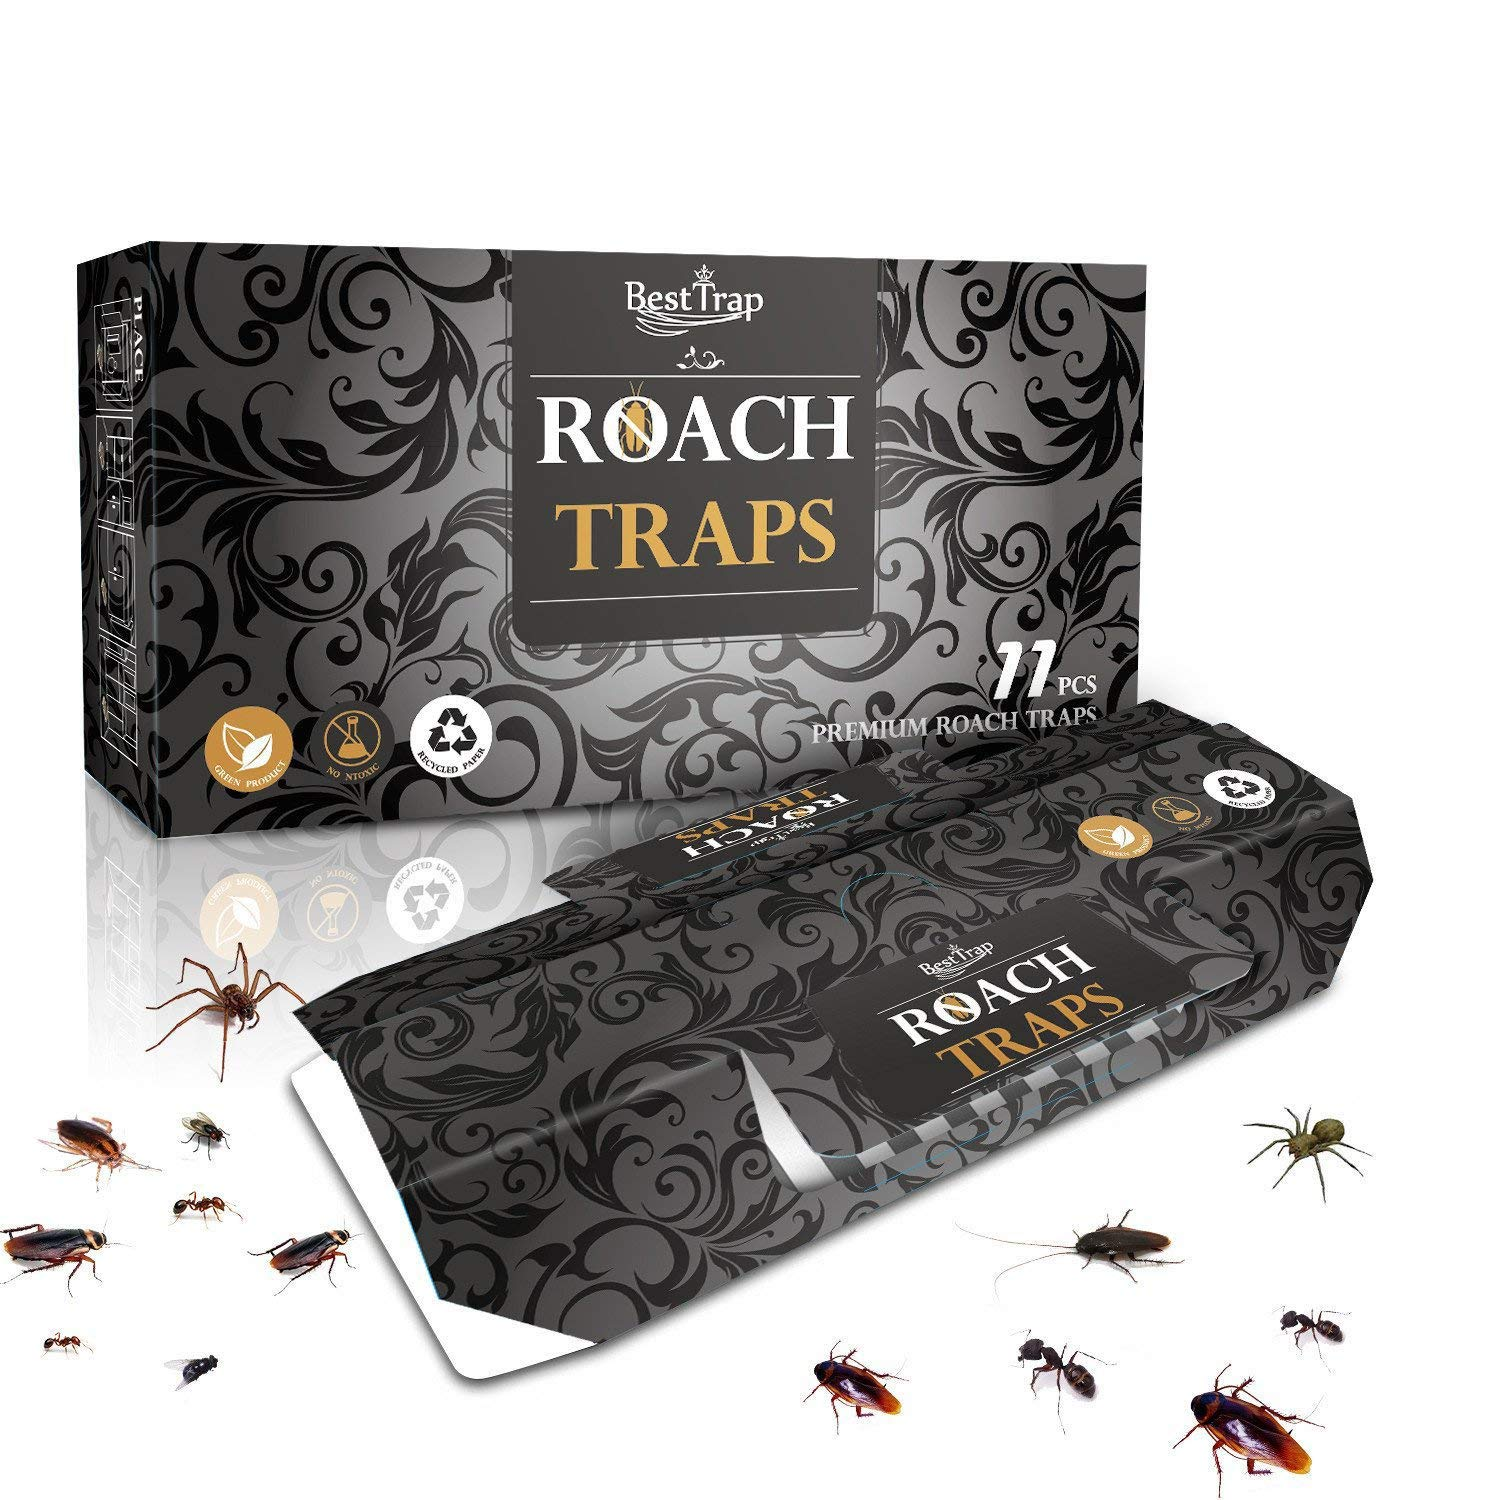 BestTrap 11 Pack Cockroach Traps with Bait Included,Premium Glue Trap,Eco-Friendly | Non-Toxic, Premium Spiders Ants Cockroach Killer